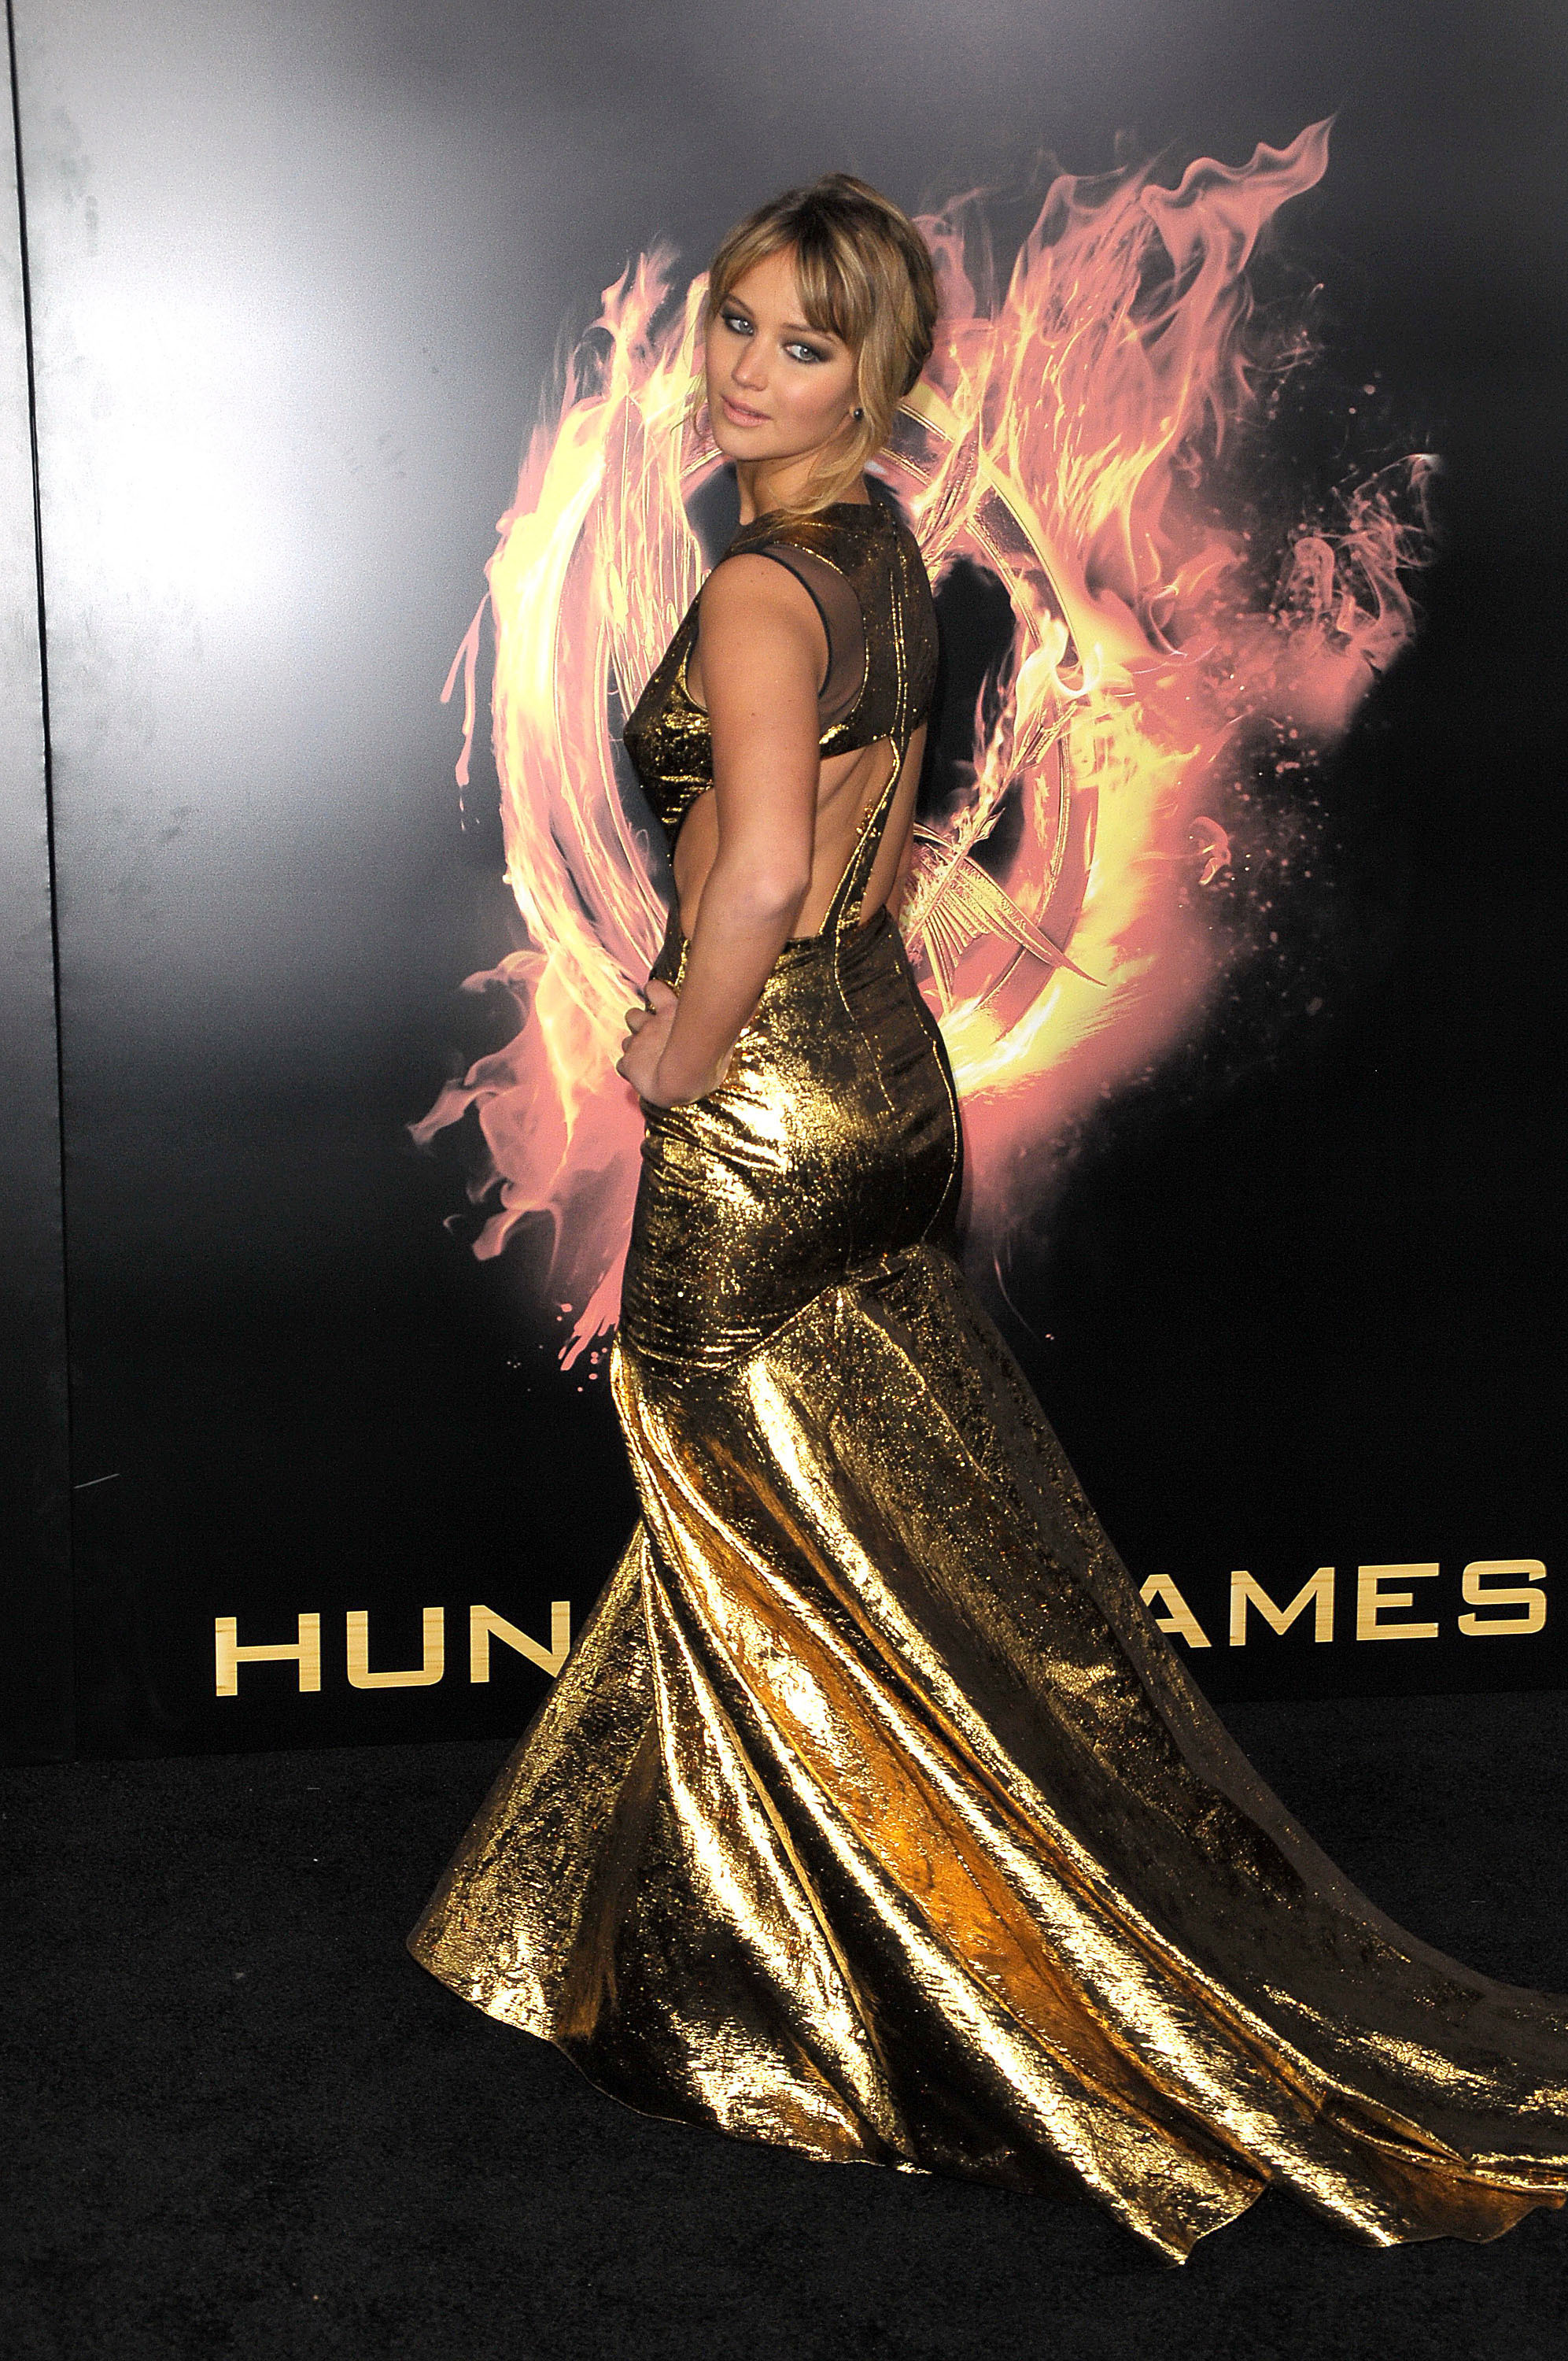 Jennifer Lawrence World Premiere of 'THE HUNGER GAMES' held at Nokia Theatre L.A. Live - Arrivals Los Angeles, California - 12.03.12 Featuring: Jennifer Lawrence Where: California, United States When: 12 Mar 2012 Credit: WENN